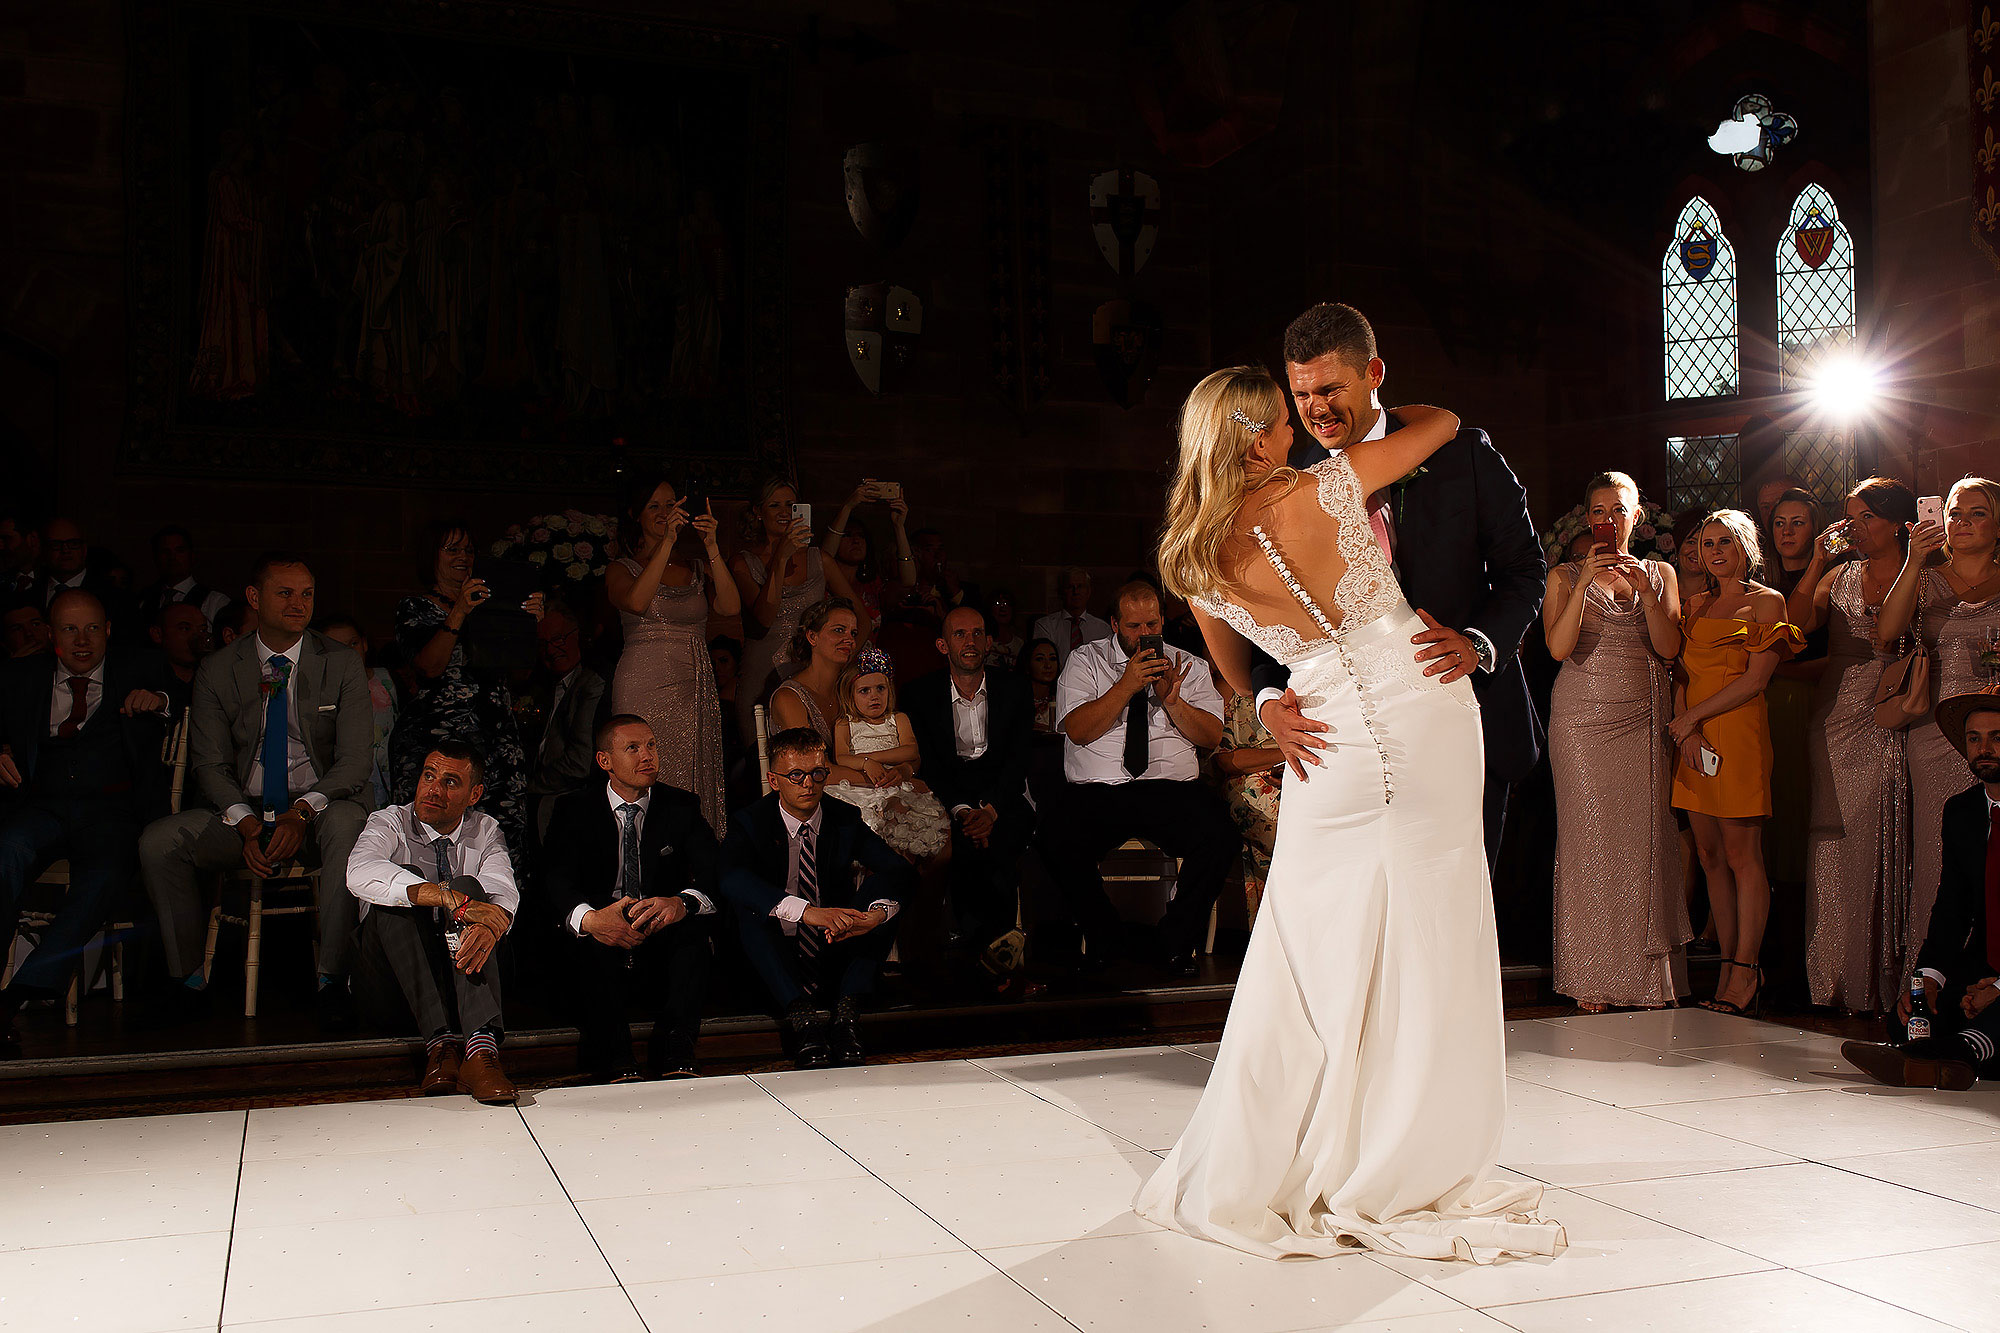 Bride and groom on the white dance floor holding each other during first dance as wedding guests all watch | Peckforton Castle Wedding by Toni Darcy Photography